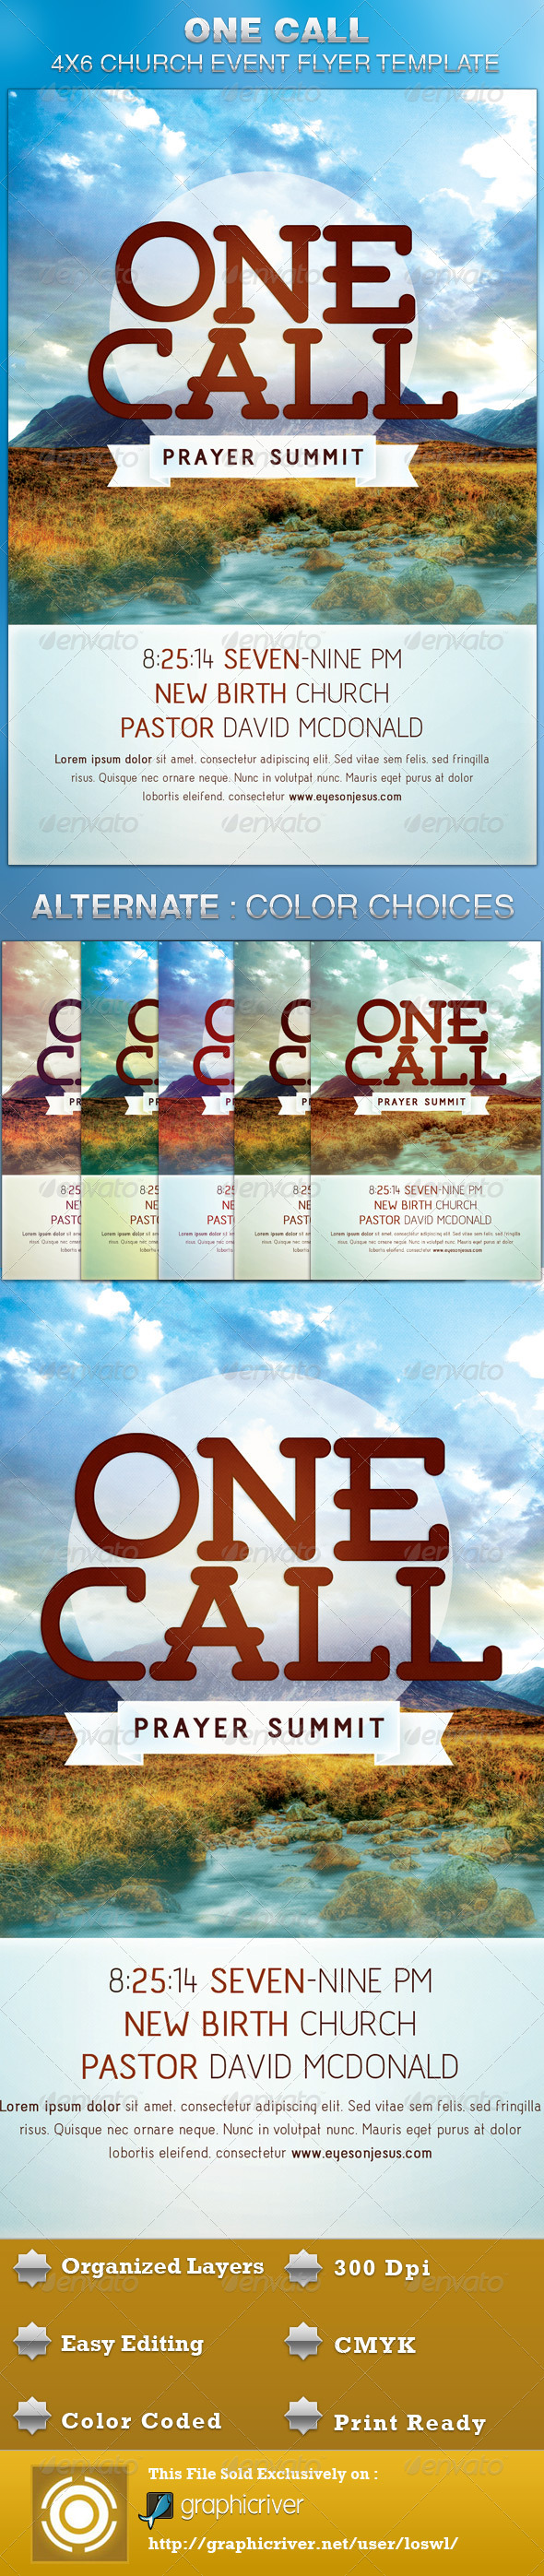 One Call Church Flyer Template - Church Flyers